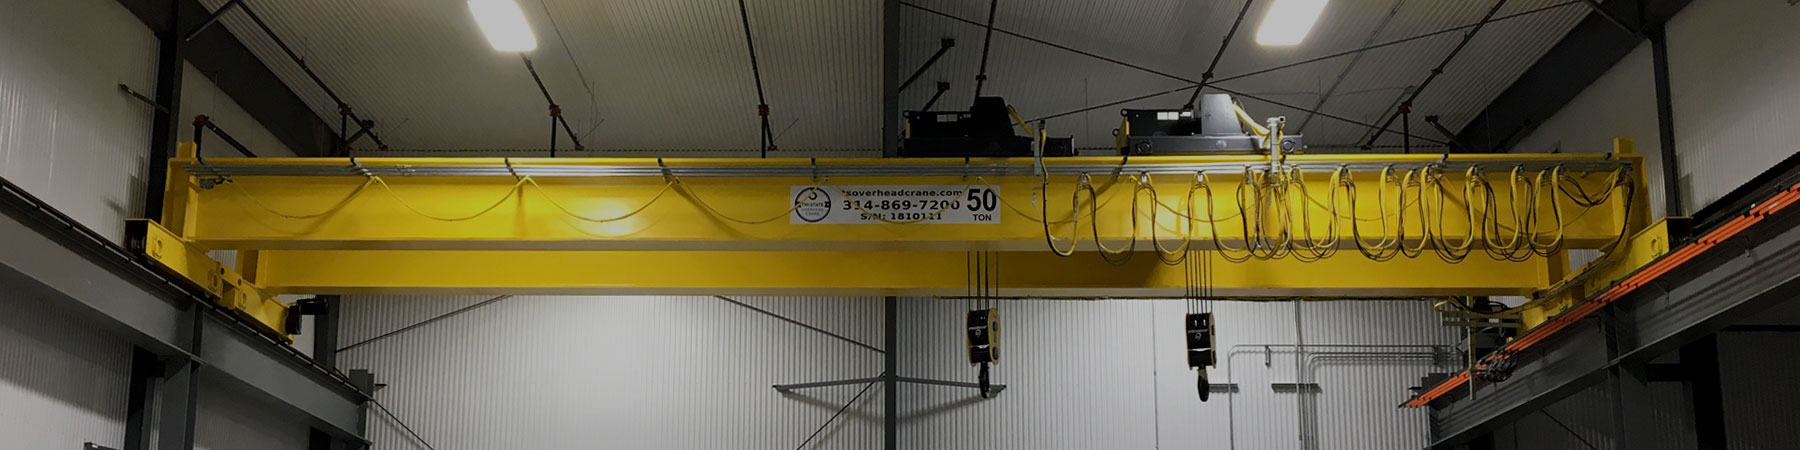 CUSTOM OVERHEAD BRIDGE CRANES